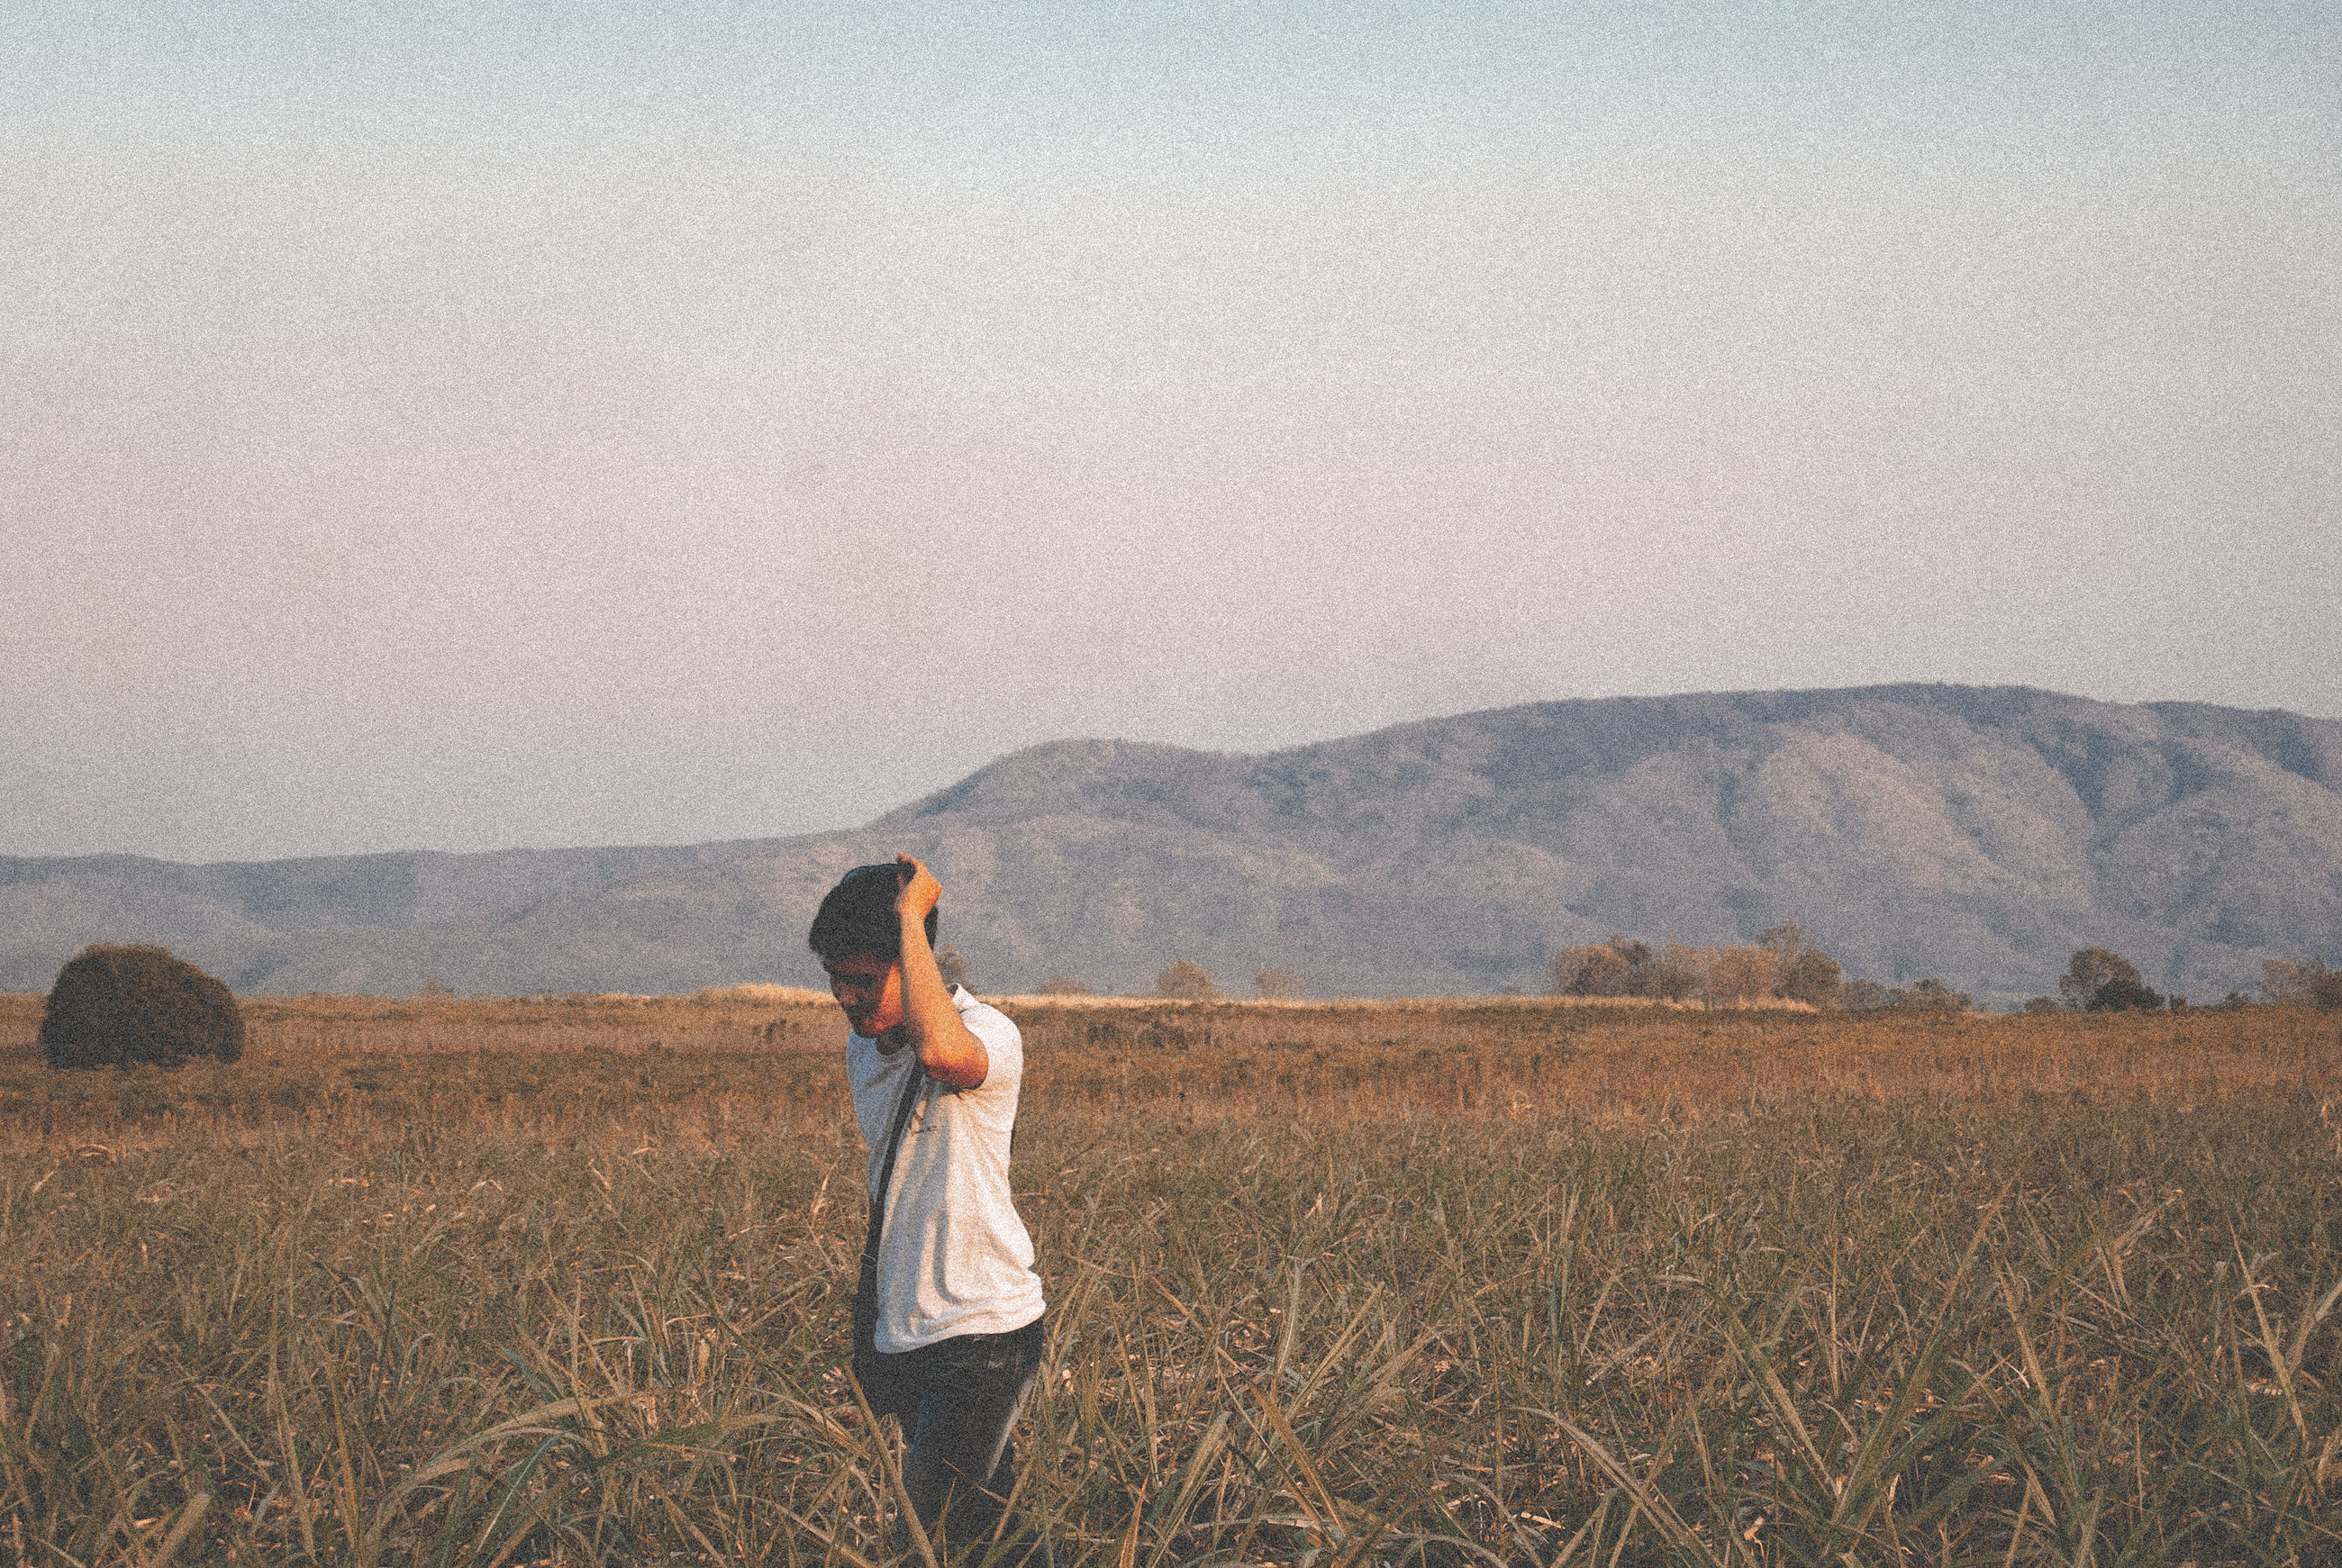 one person, field, land, landscape, standing, sky, environment, mountain, nature, scenics - nature, casual clothing, beauty in nature, leisure activity, young adult, non-urban scene, tranquility, day, real people, plant, outdoors, hairstyle